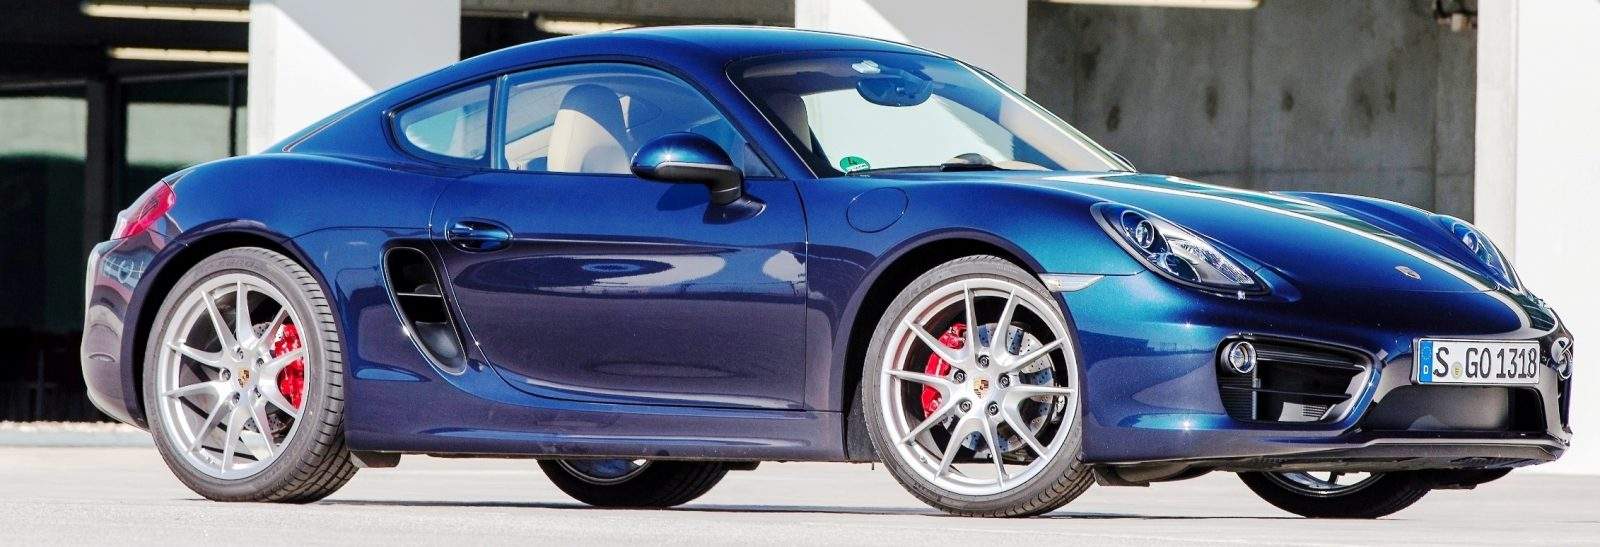 CarRevsDaily - Porsche CAYMAN Buyers Buide Photos 19